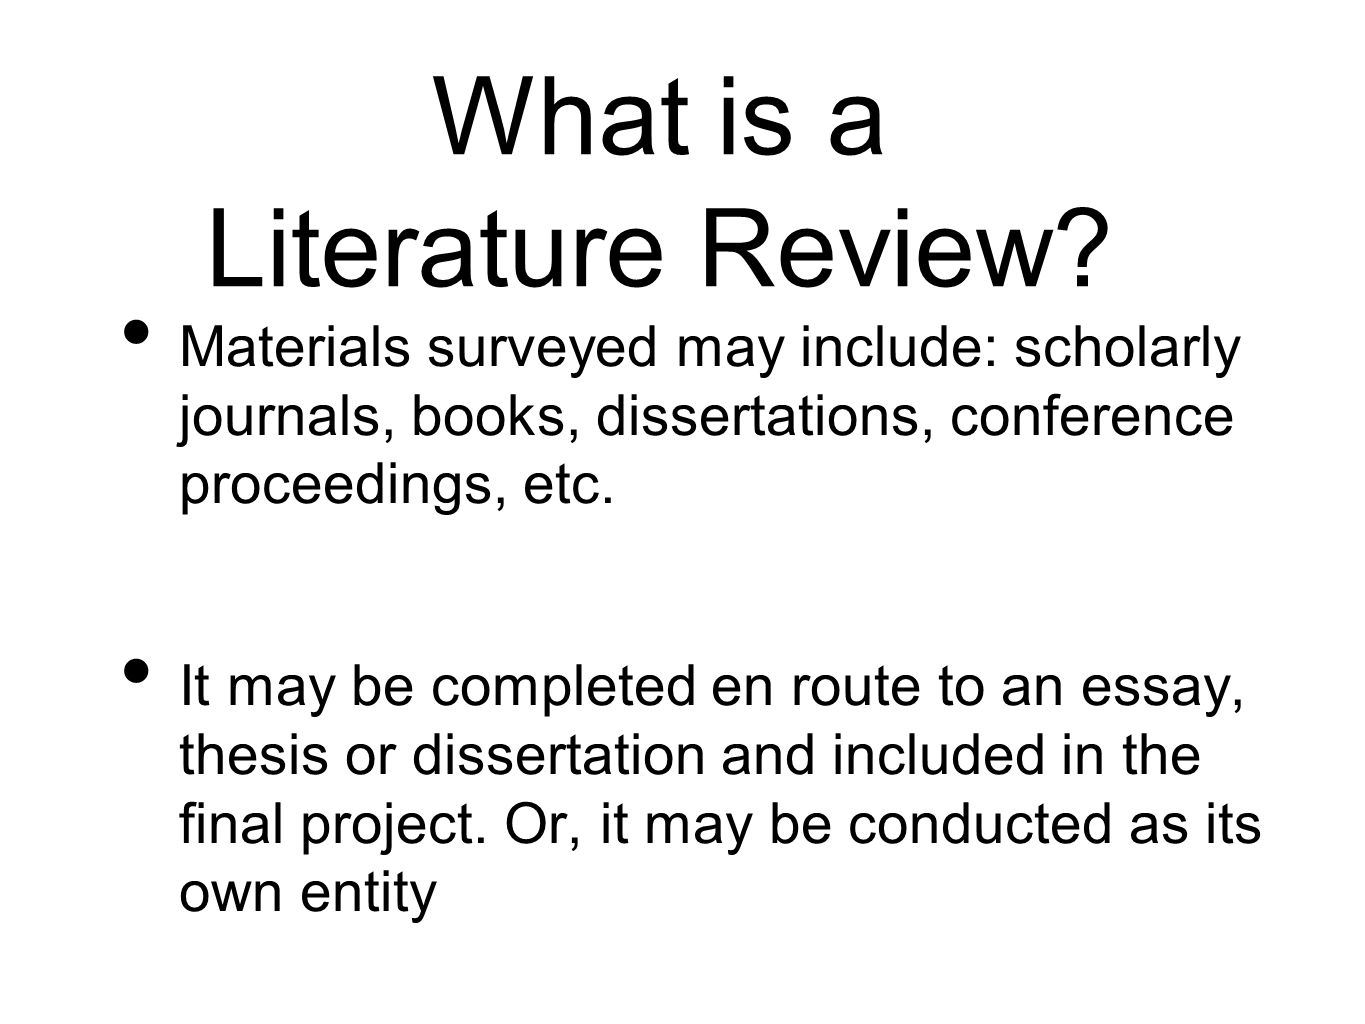 scholarly journals essay Using library research databases to locate scholarly articles why the databases the umuc library provides access to over 100 research databases containing tens of thousands of full-text scholarly and professional articles, as well as reports, statistics, case studies, book chapters and some complete books in a wide range of subject areas.